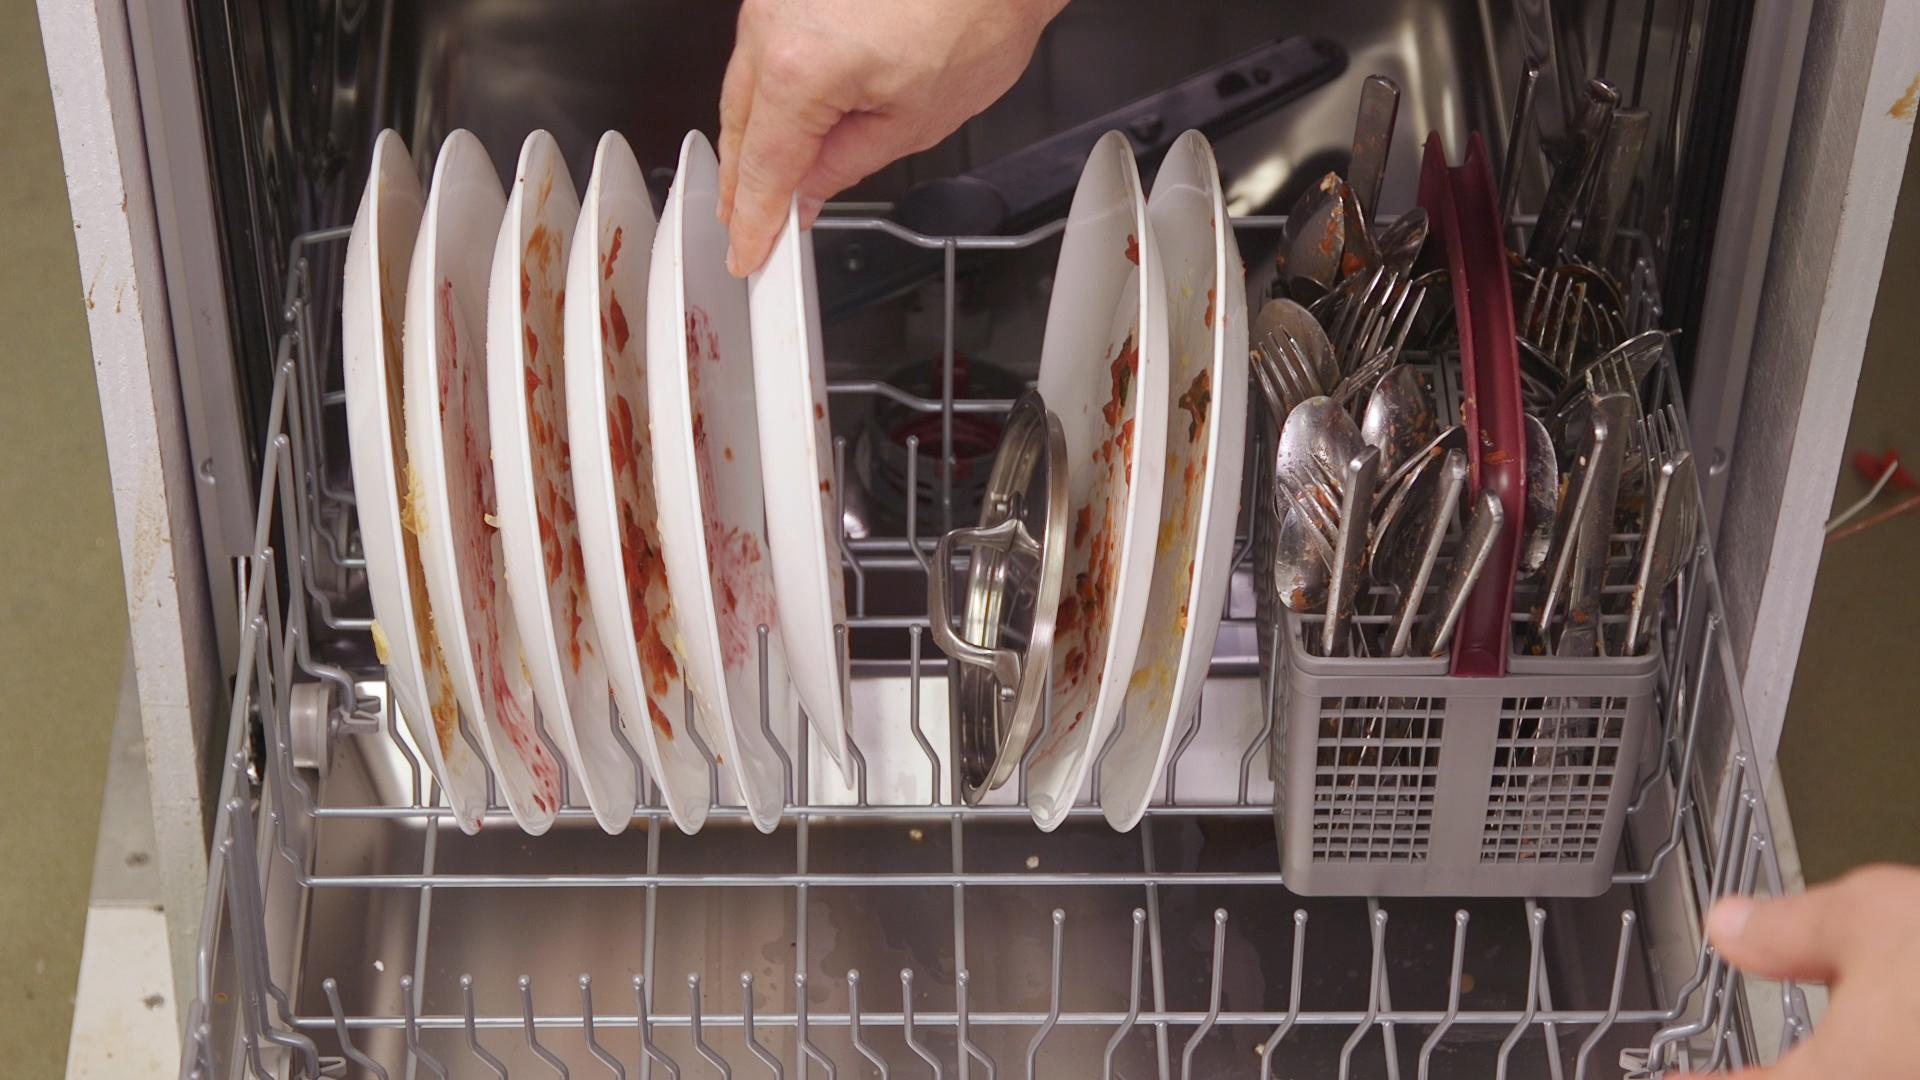 How to Load a Dishwasher - Consumer Reports